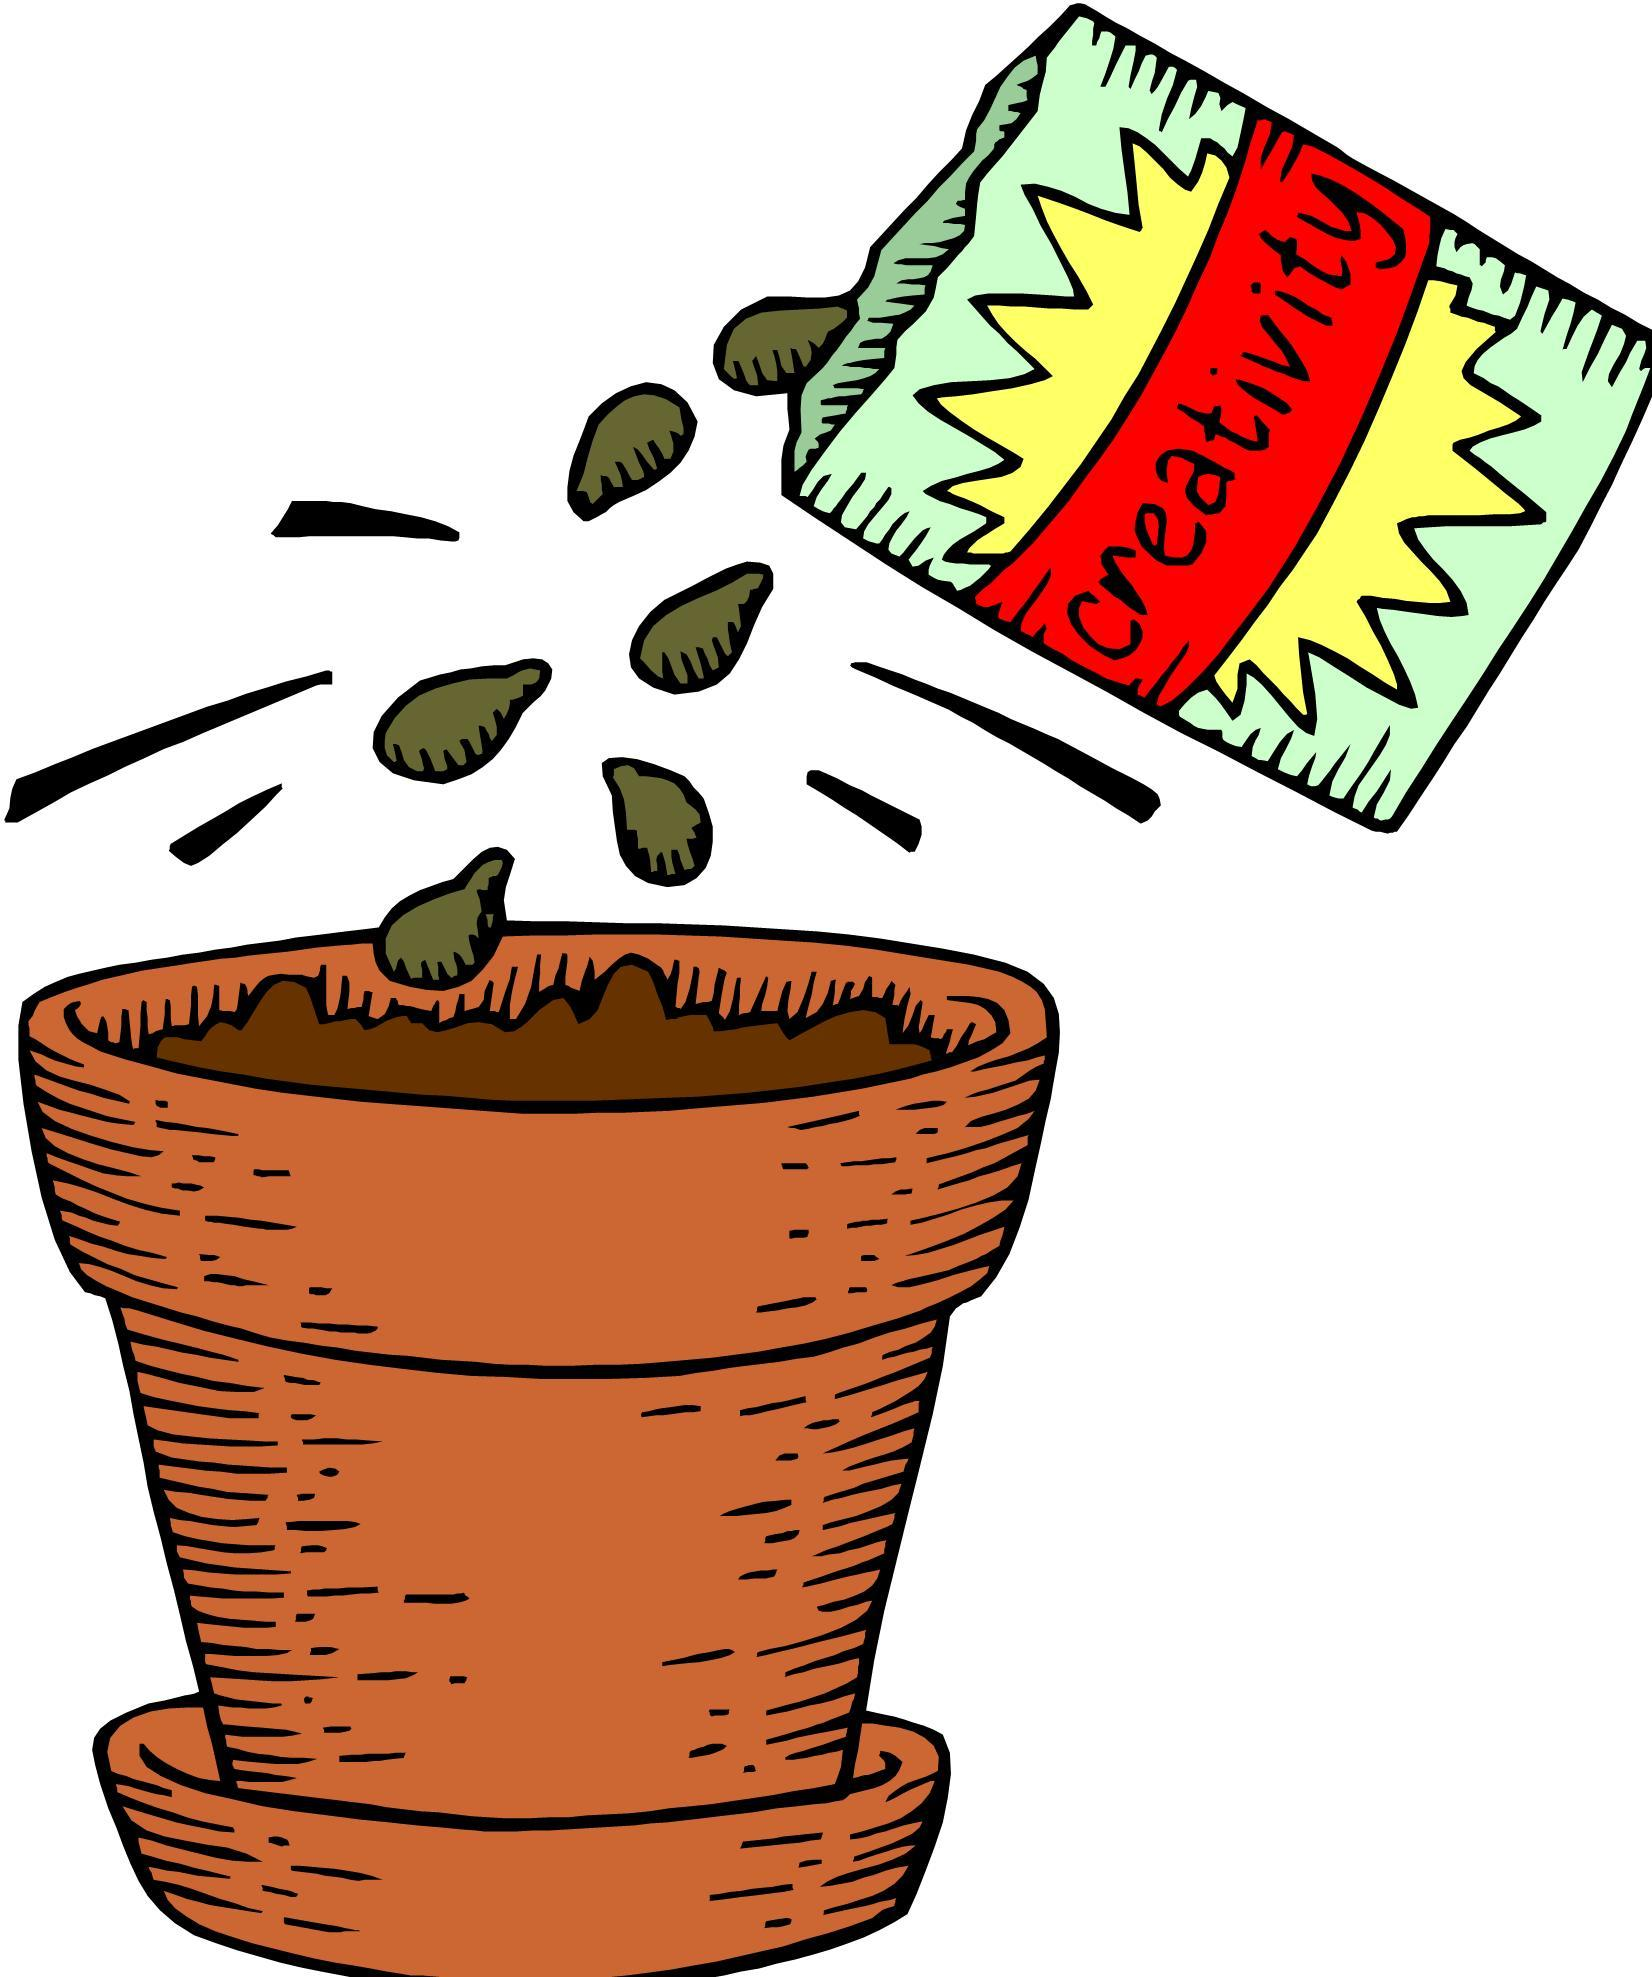 Seeds images clipart clip art royalty free Seeds clipart 7 » Clipart Portal clip art royalty free